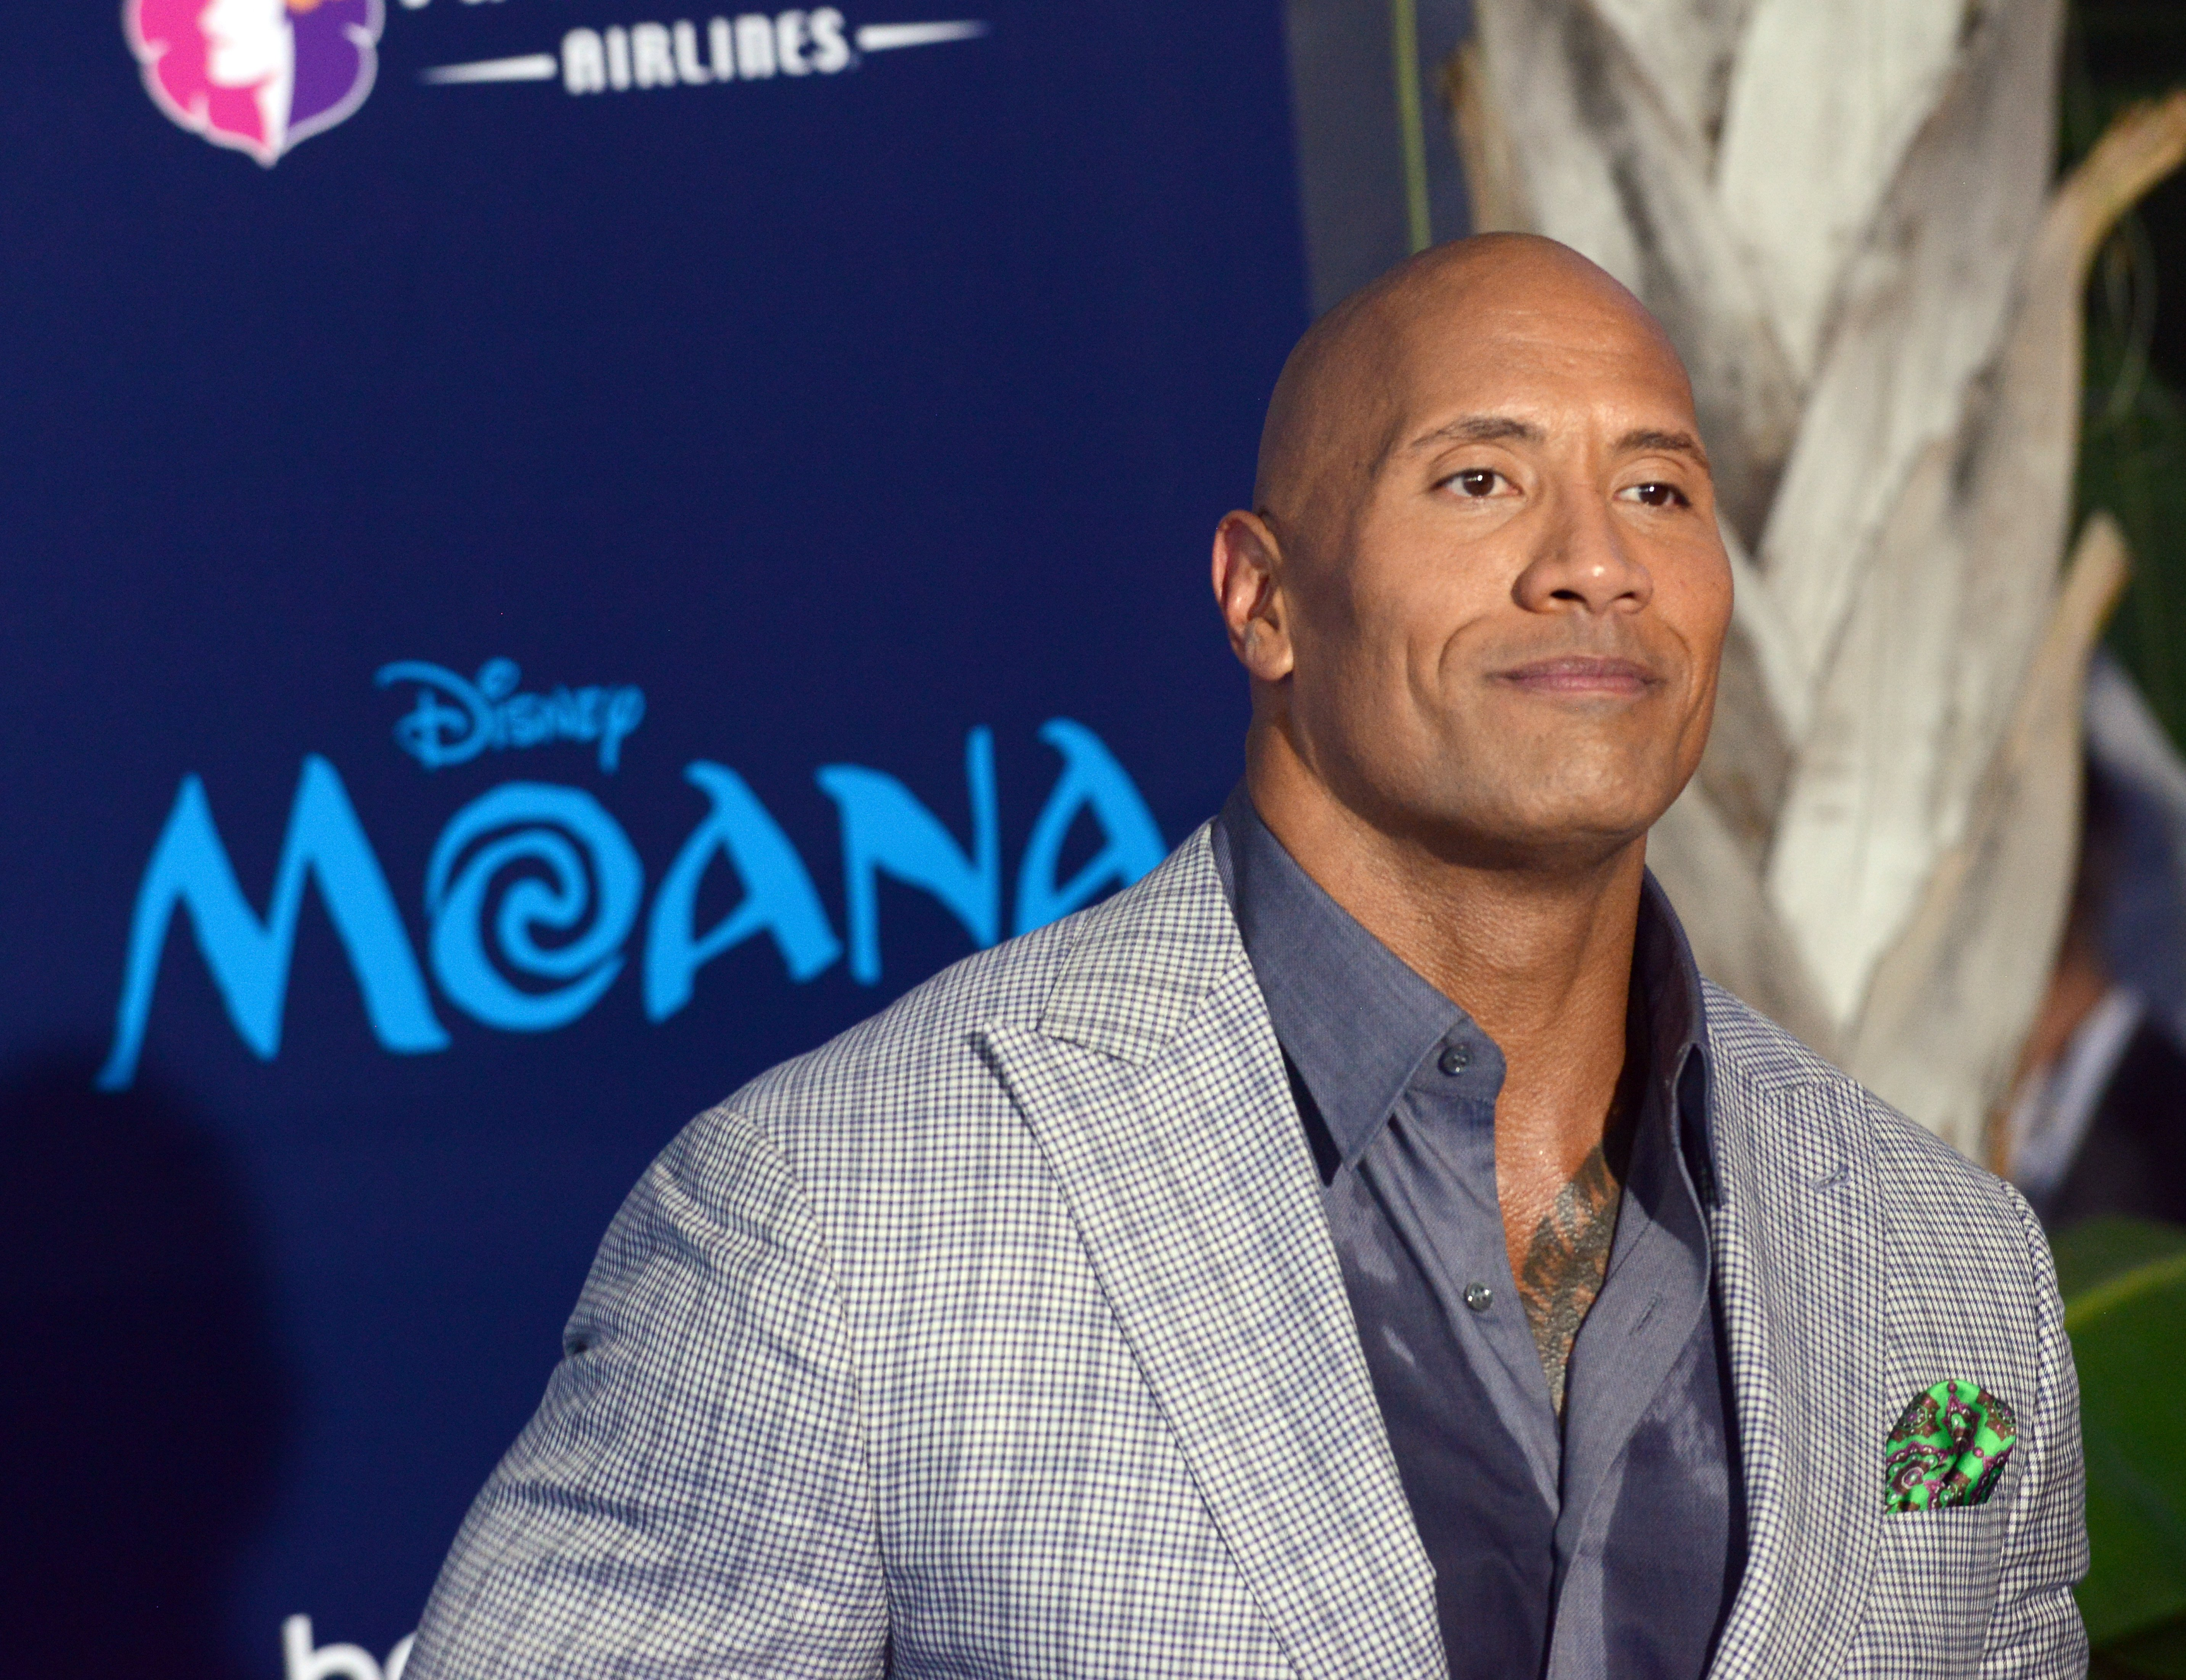 """Dwayne Johnson attends the Disney premiere of """"Moana"""" at AFI FEST 2016 in Hollywood, California, in November 2016. 